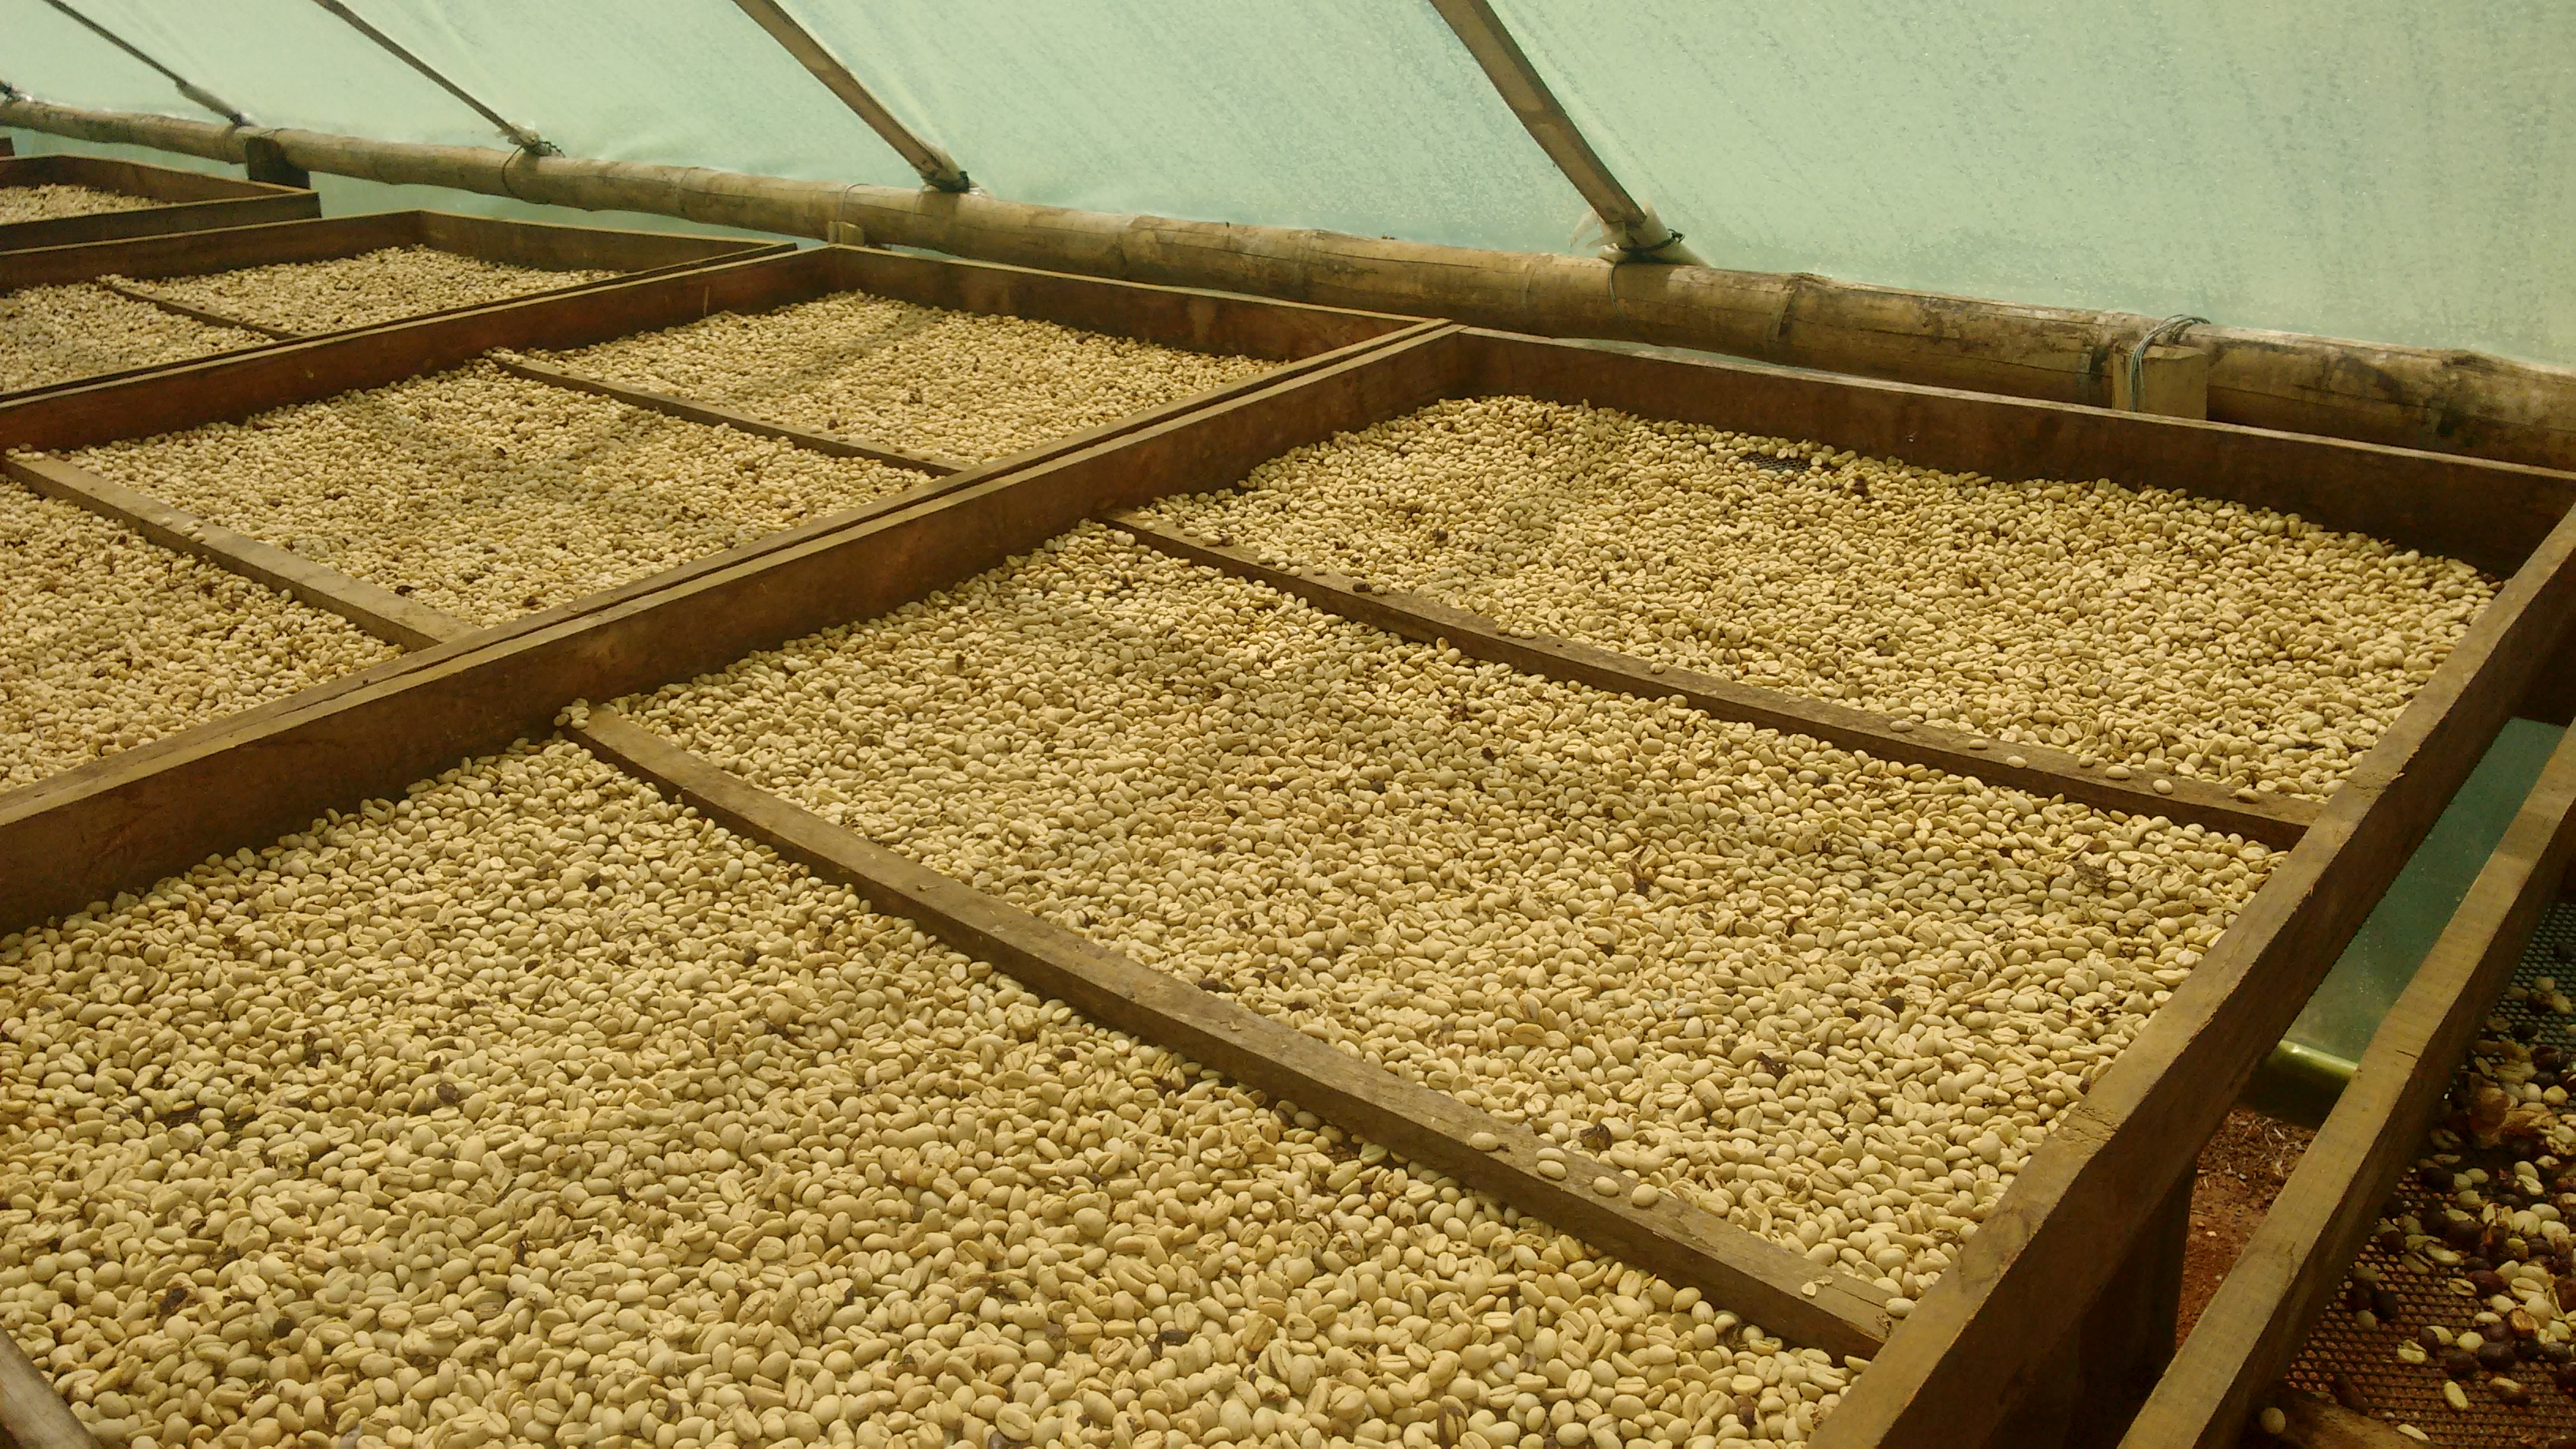 Drying our high quality washed Arabica coffee in Colombia. Directly imported from producers in Colombia.